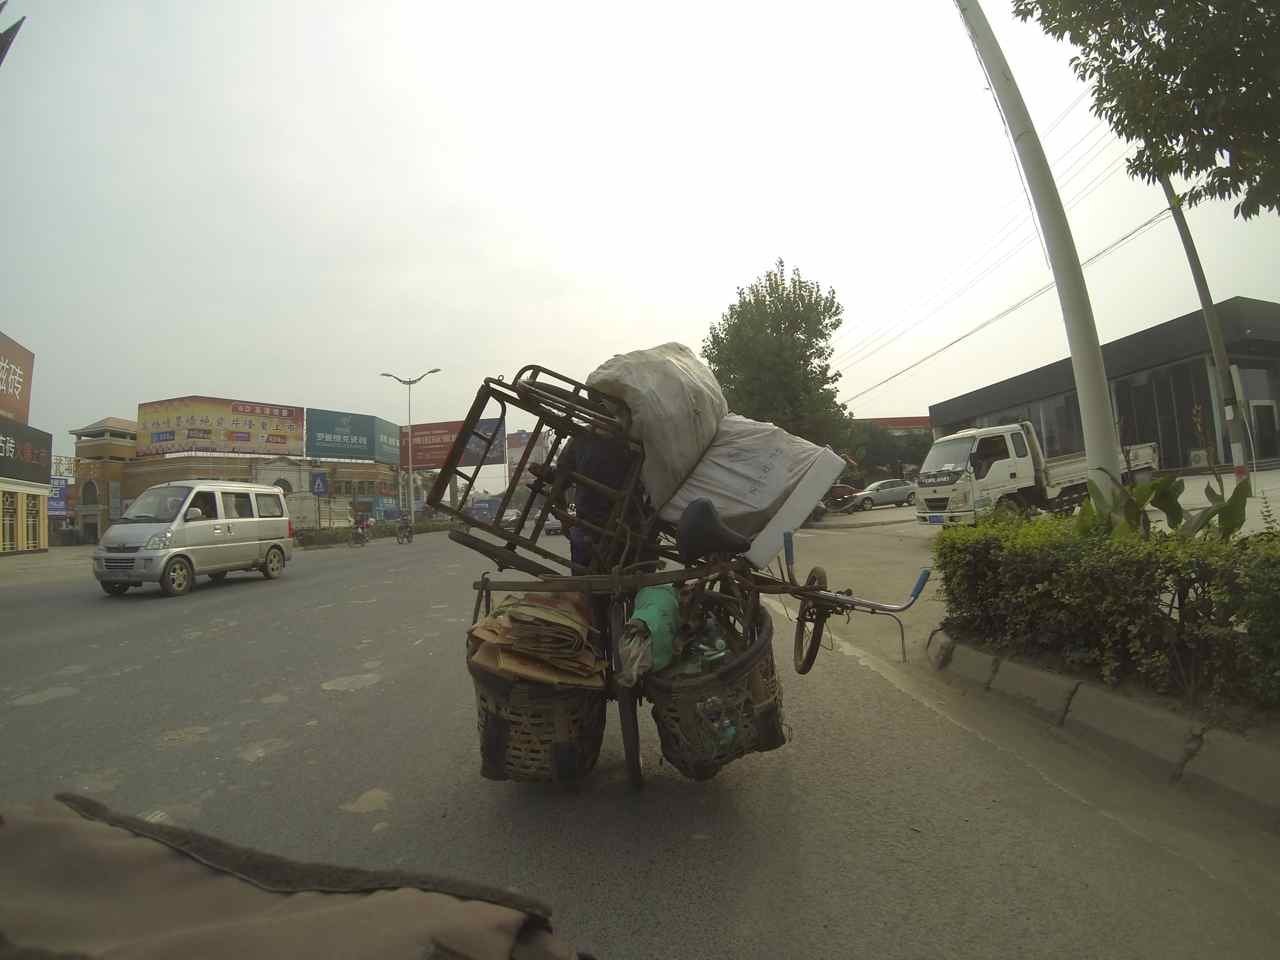 We get to see many things along the road. Here we rode behind a bicycle that among other things also carried a tricycle